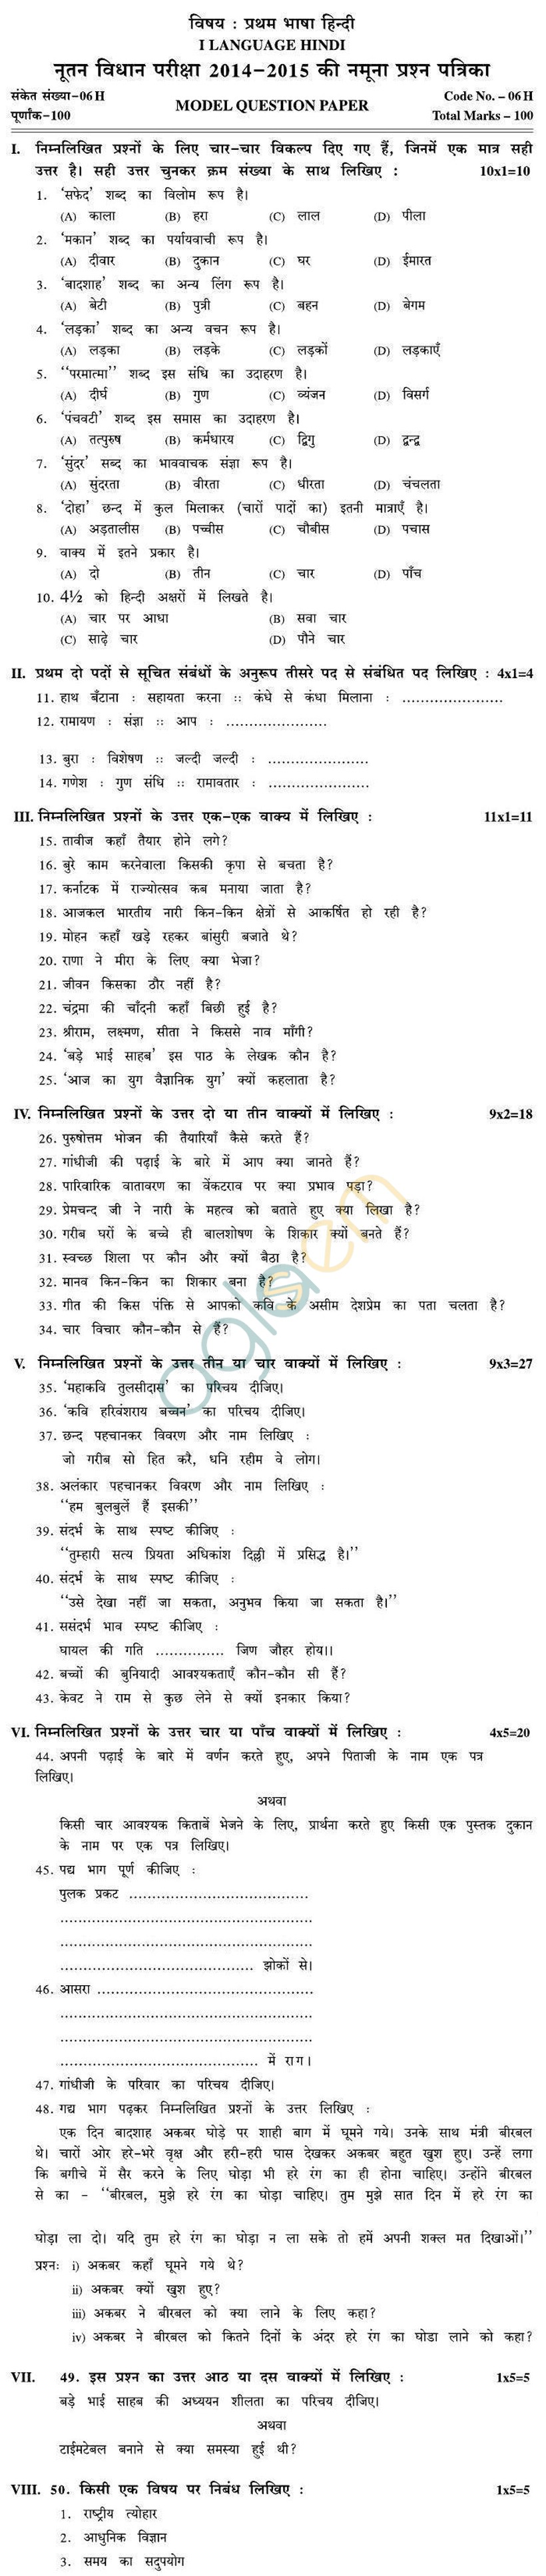 Karnataka Board SSLC Model Question Papers 2015 for Hindi